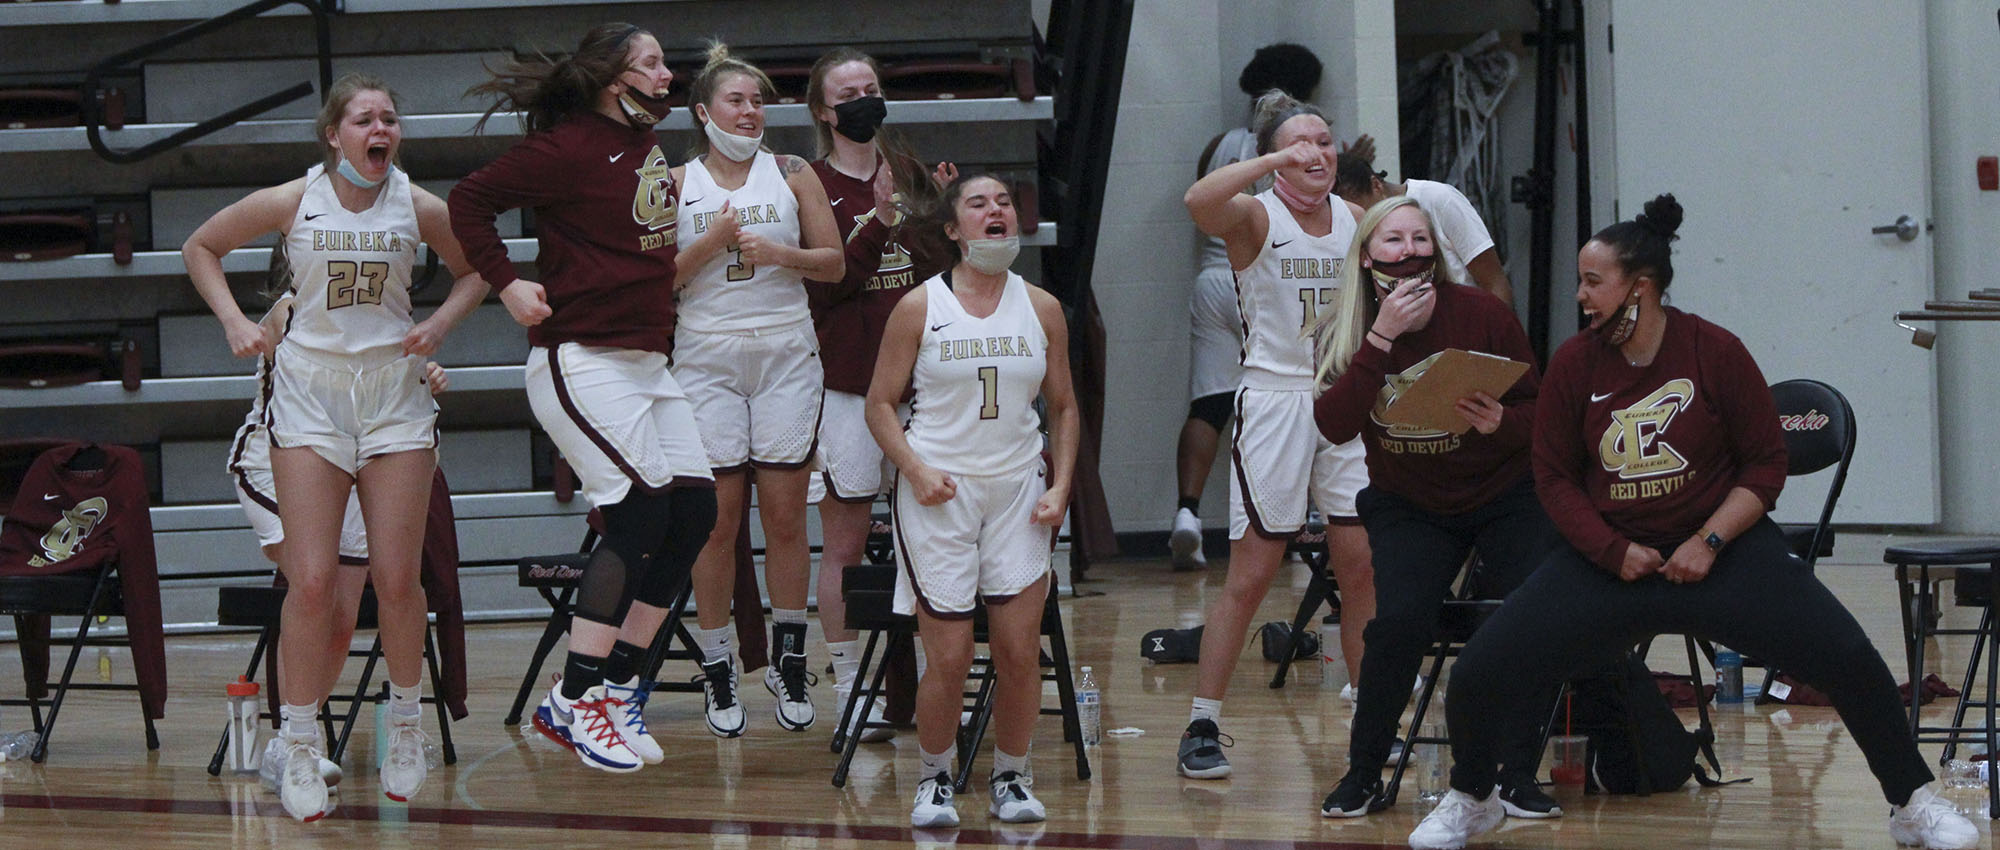 Eureka Tops Spalding, Advances to SLIAC Semifinals, 85-58